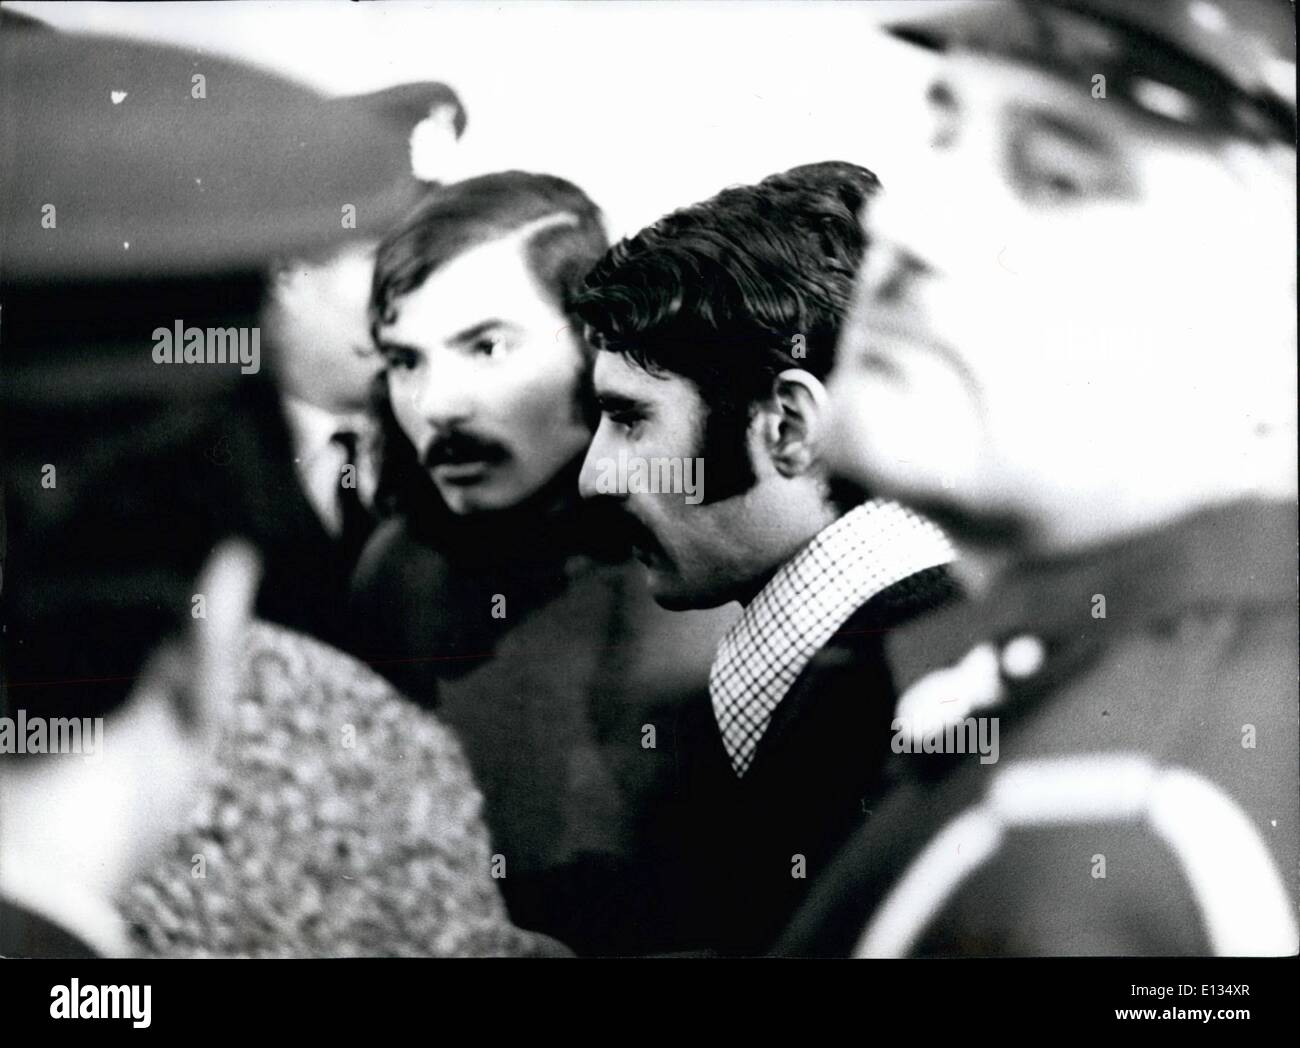 Feb. 28, 2012 - Five times death penalty for each of them. That was the verdict of the Athens court on January 24th 1974 against the two Palestinians who had outraged the Athens Airport on August 5th 1973 with hand granades and automatic guns. Five people were killed and 56 injured. Nobody in Athens however believes, that the convicted will really be executed. Here the two Palestinians Khanturan Palaal (21) and Arid el (22) in the Athens courtroom under the strictest security measures. - Stock Image